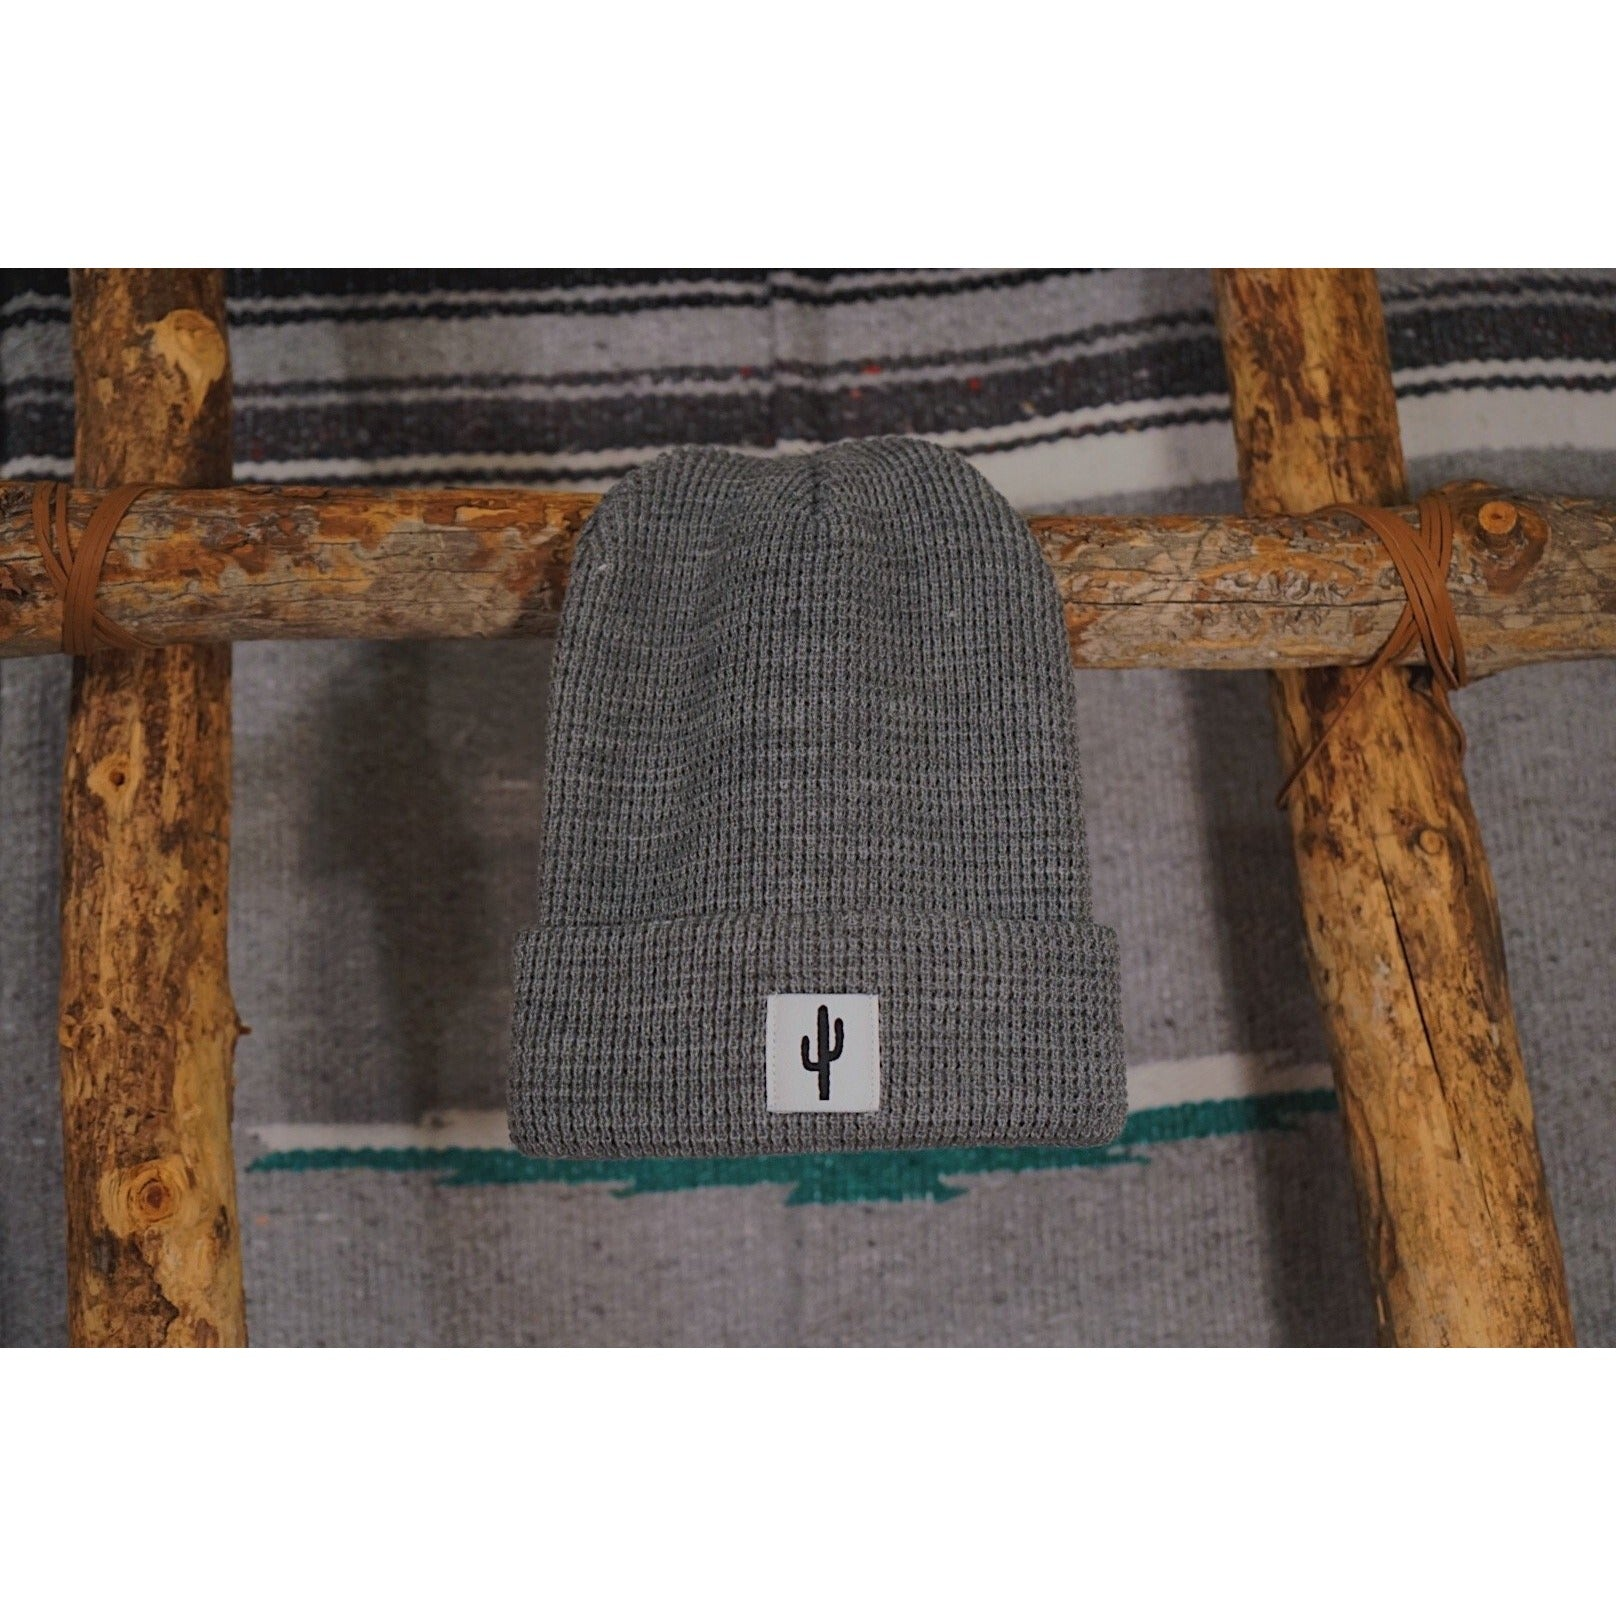 The Saguaro Waffle Knit Beanie - Copper Revival